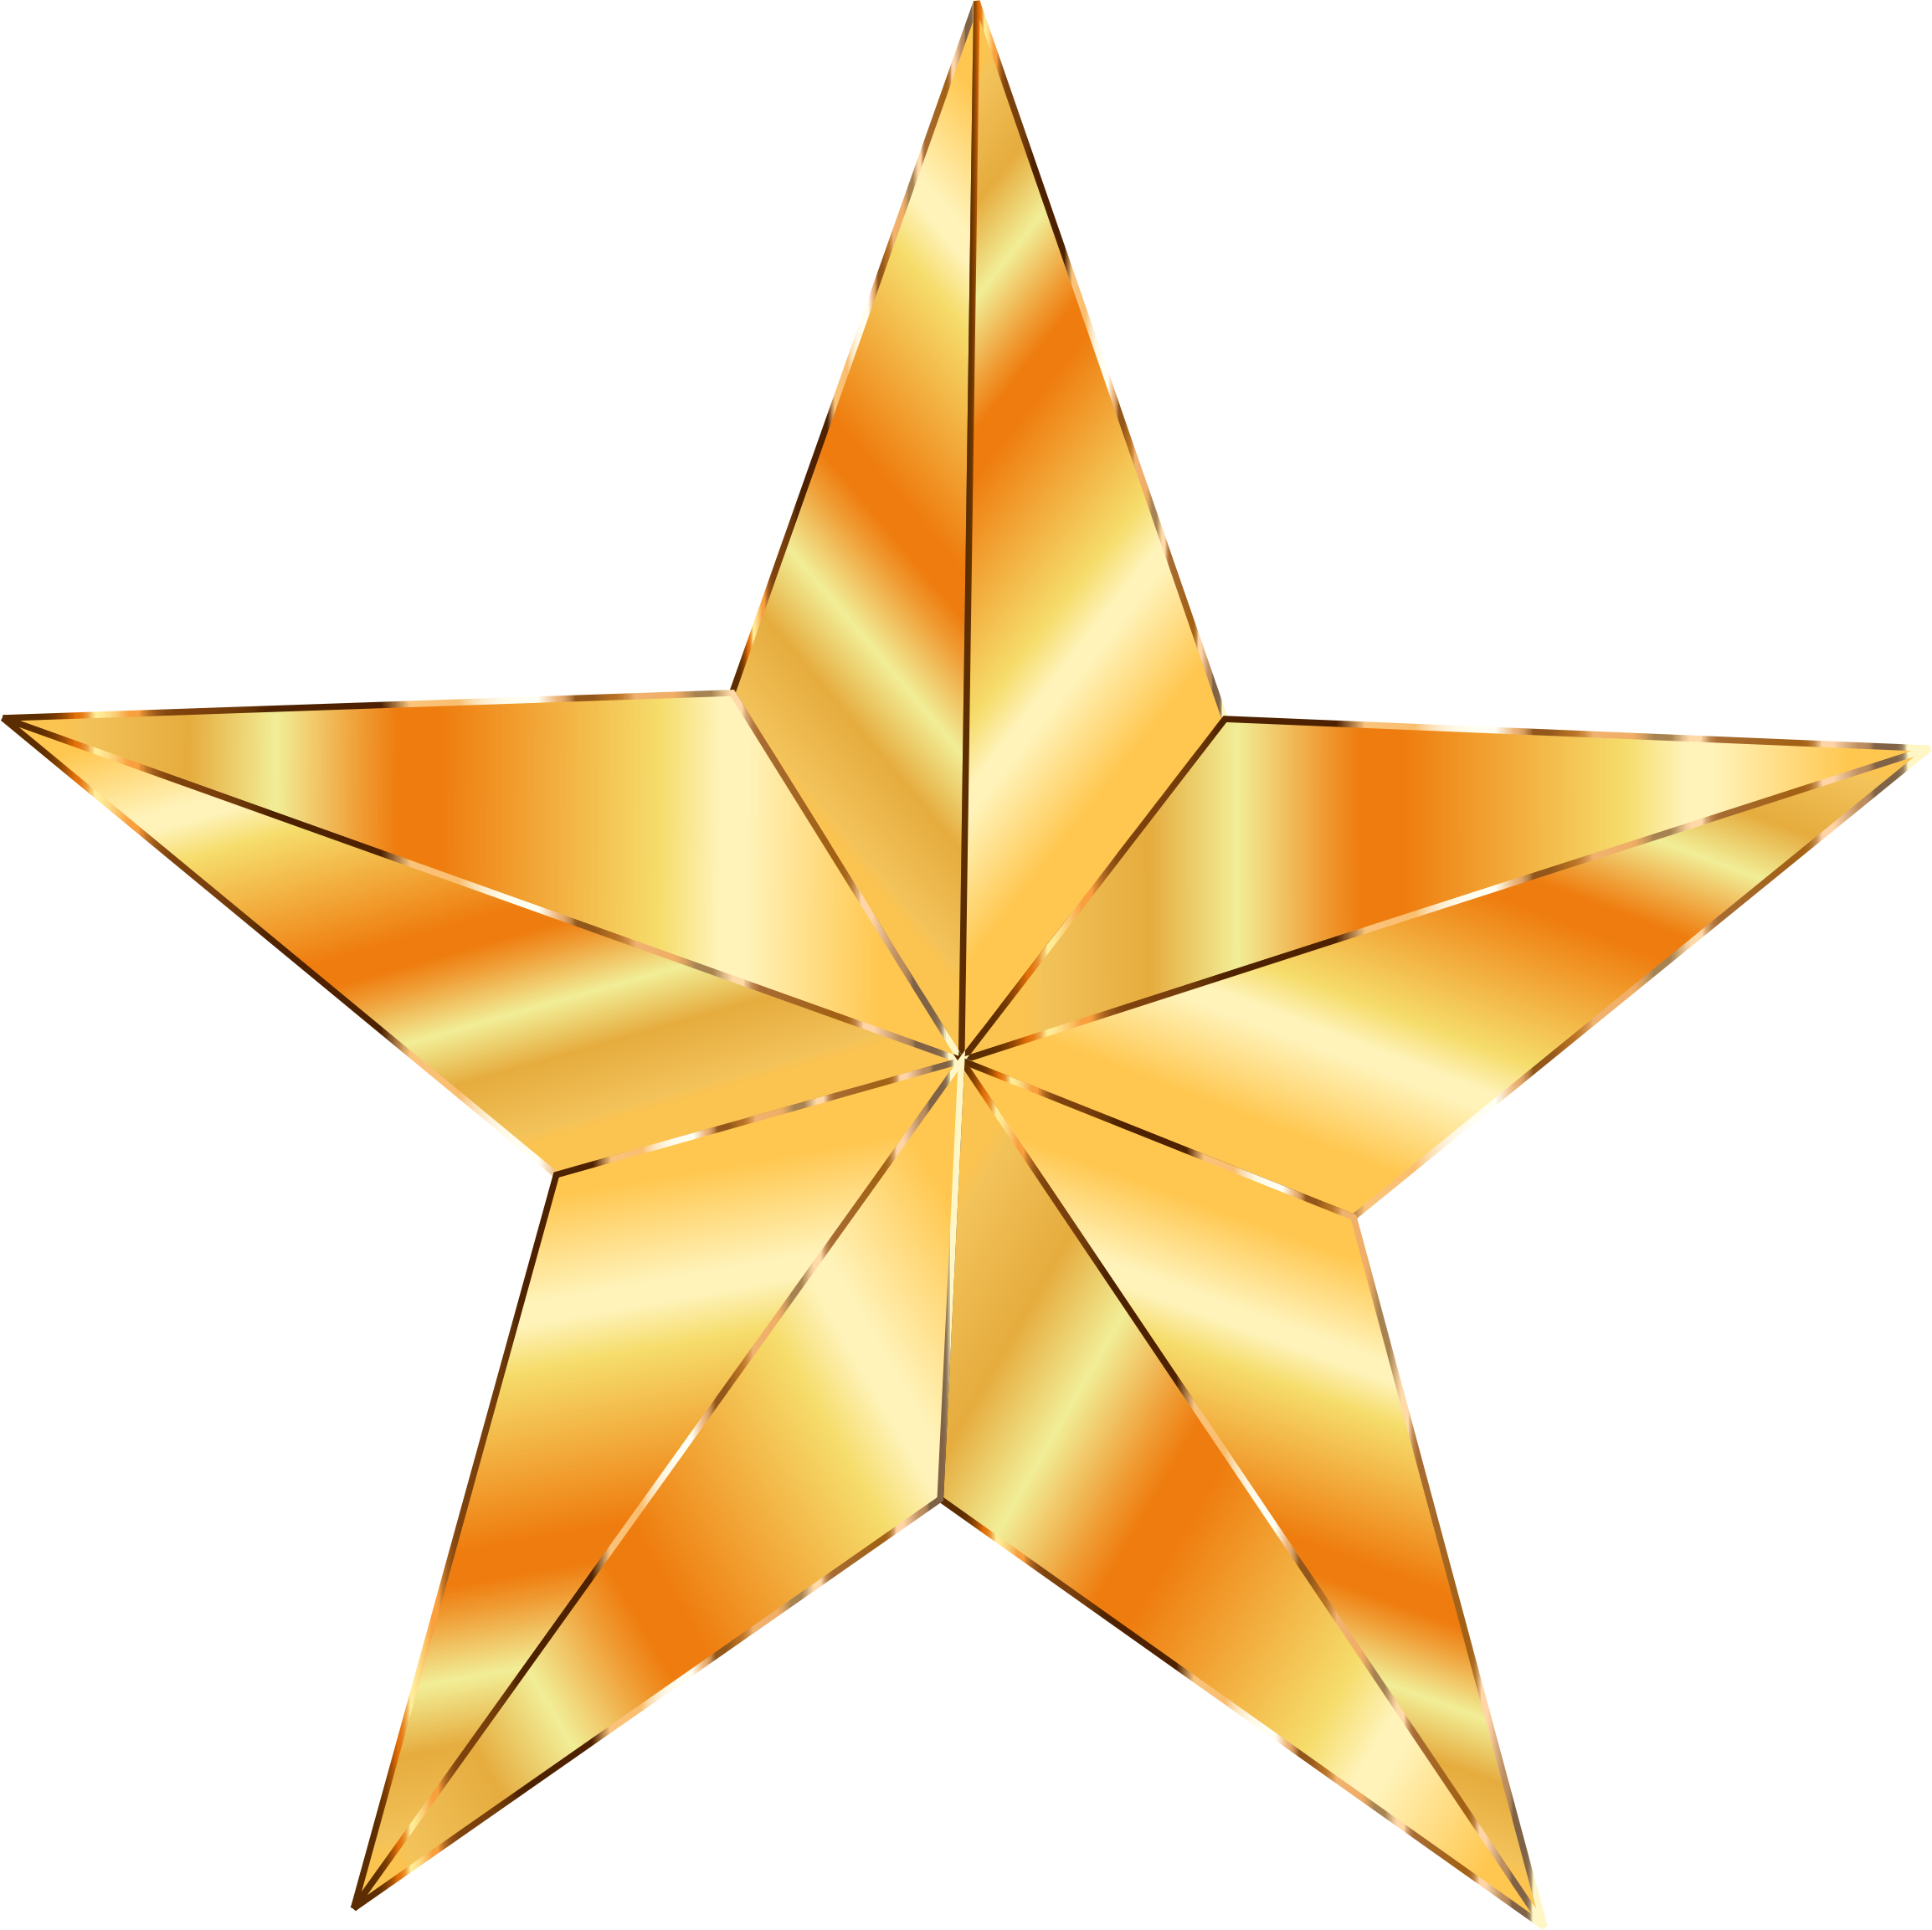 Stellar star clipart picture transparent library Golden Star by @GDJ, The golden star used in the